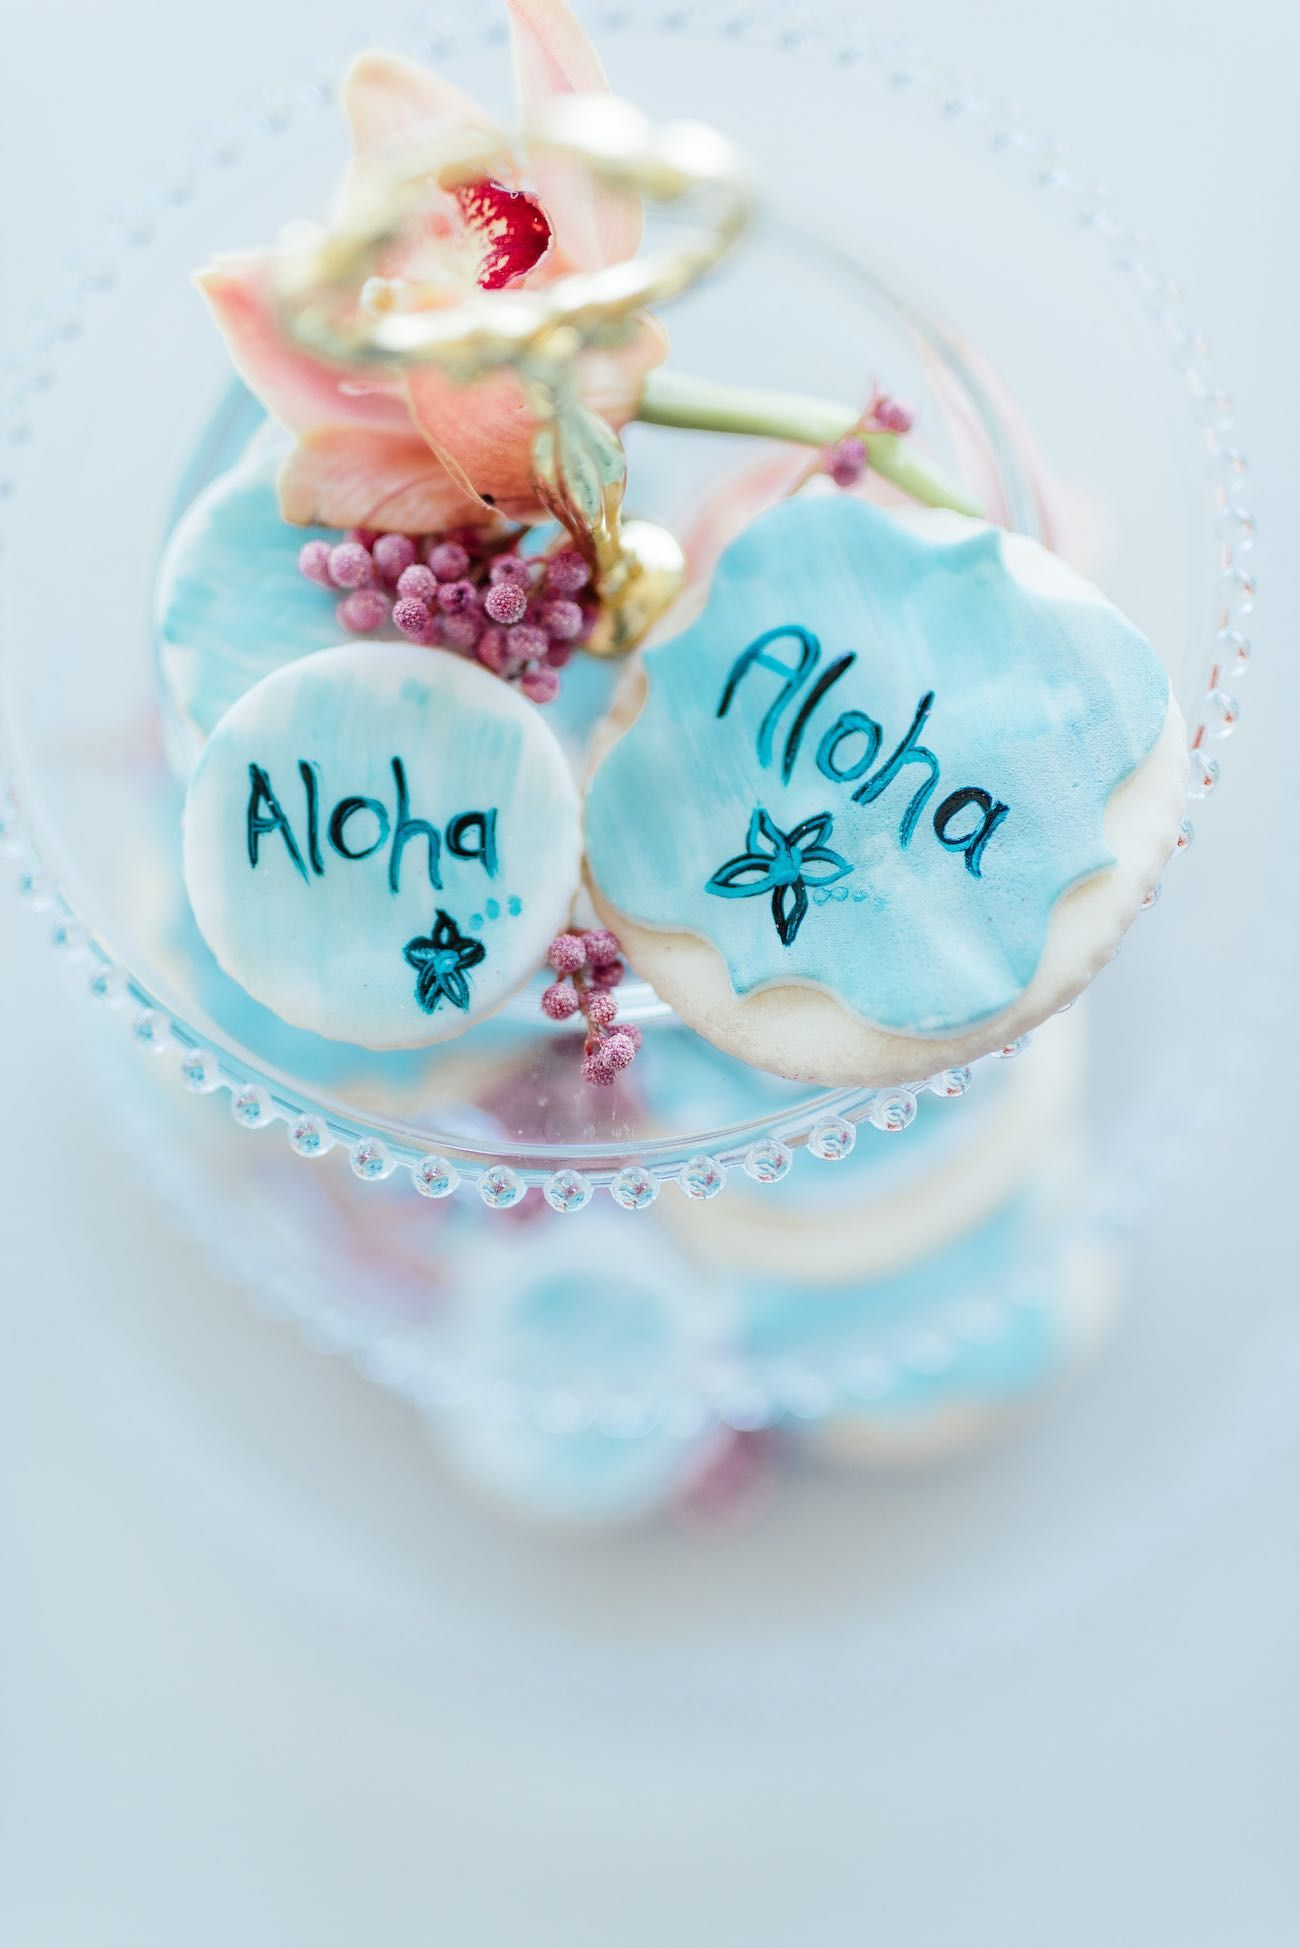 Aloha! Hand painted biscuit wedding favors for a pastel mint tropical wedding. Click for the most absolutely gorgeous Tropical Wedding ideas ever! http://www.confettidaydreams.com/tropical-wedding-ideas/